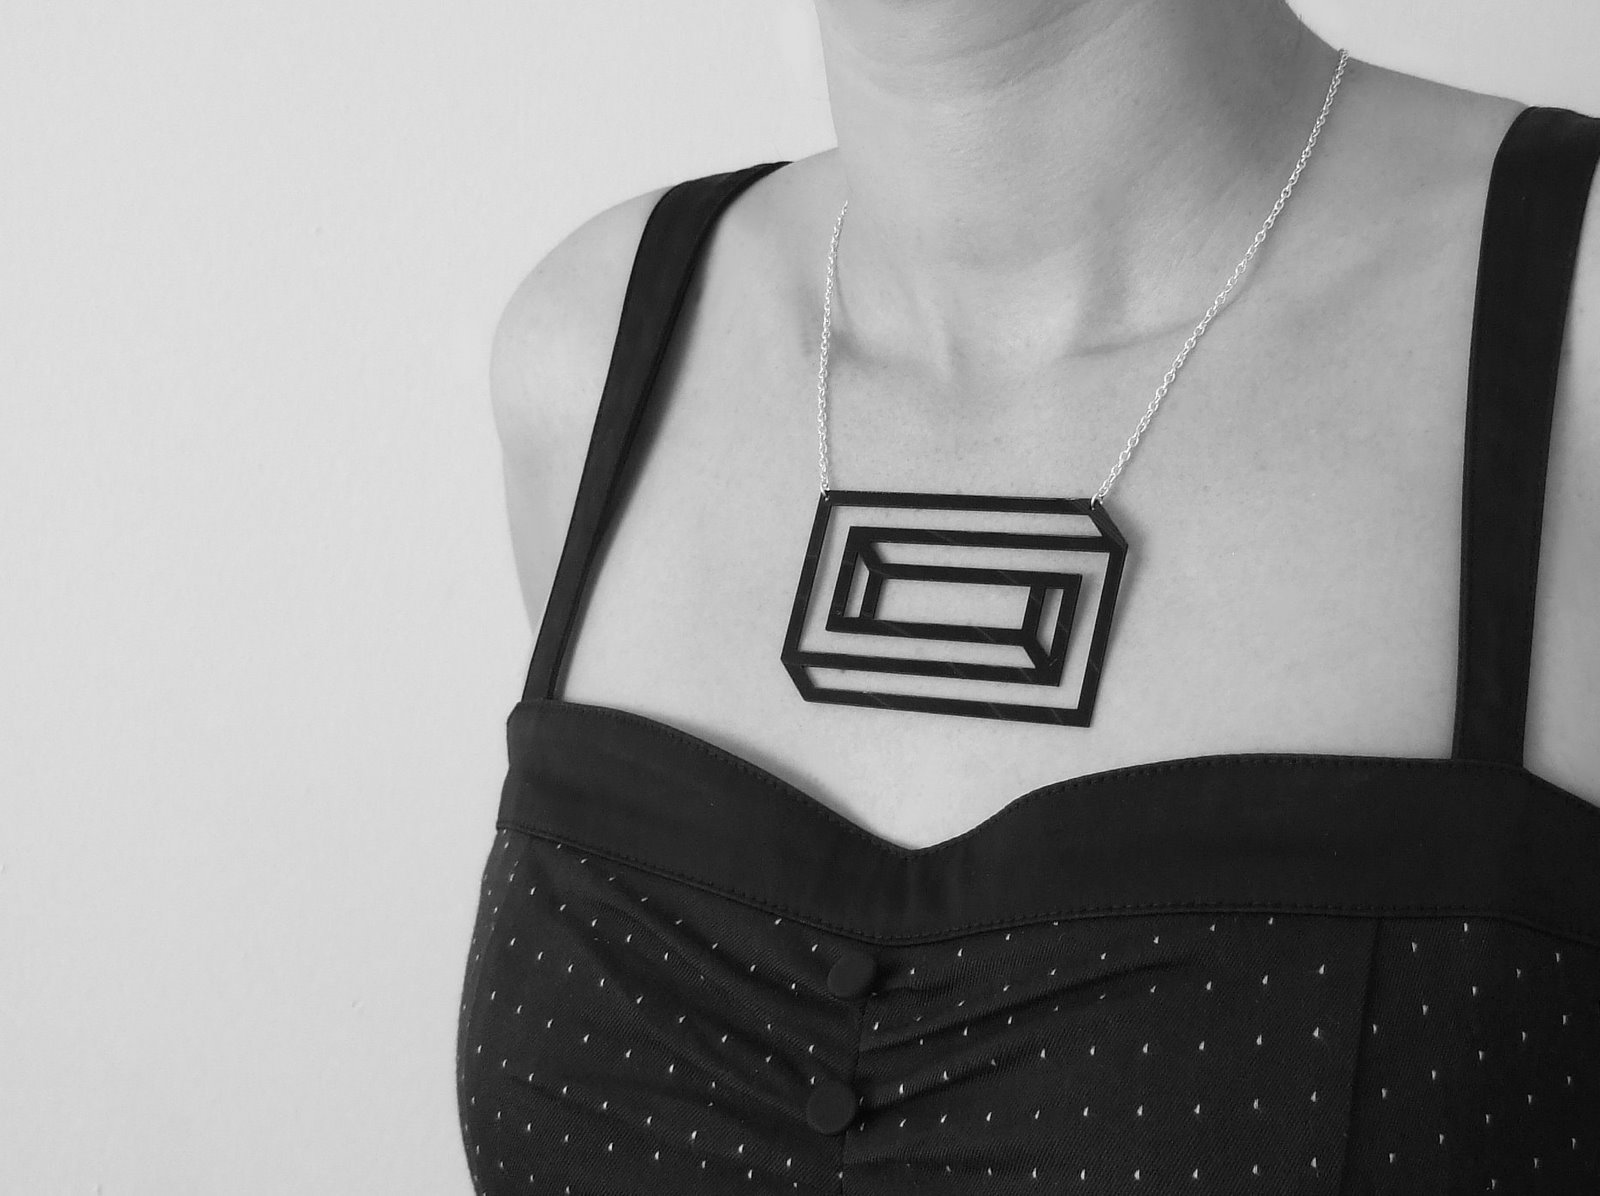 Aroha Silhouettes jewellery made from recycled vinyl records - featured on Much Music Canada blog